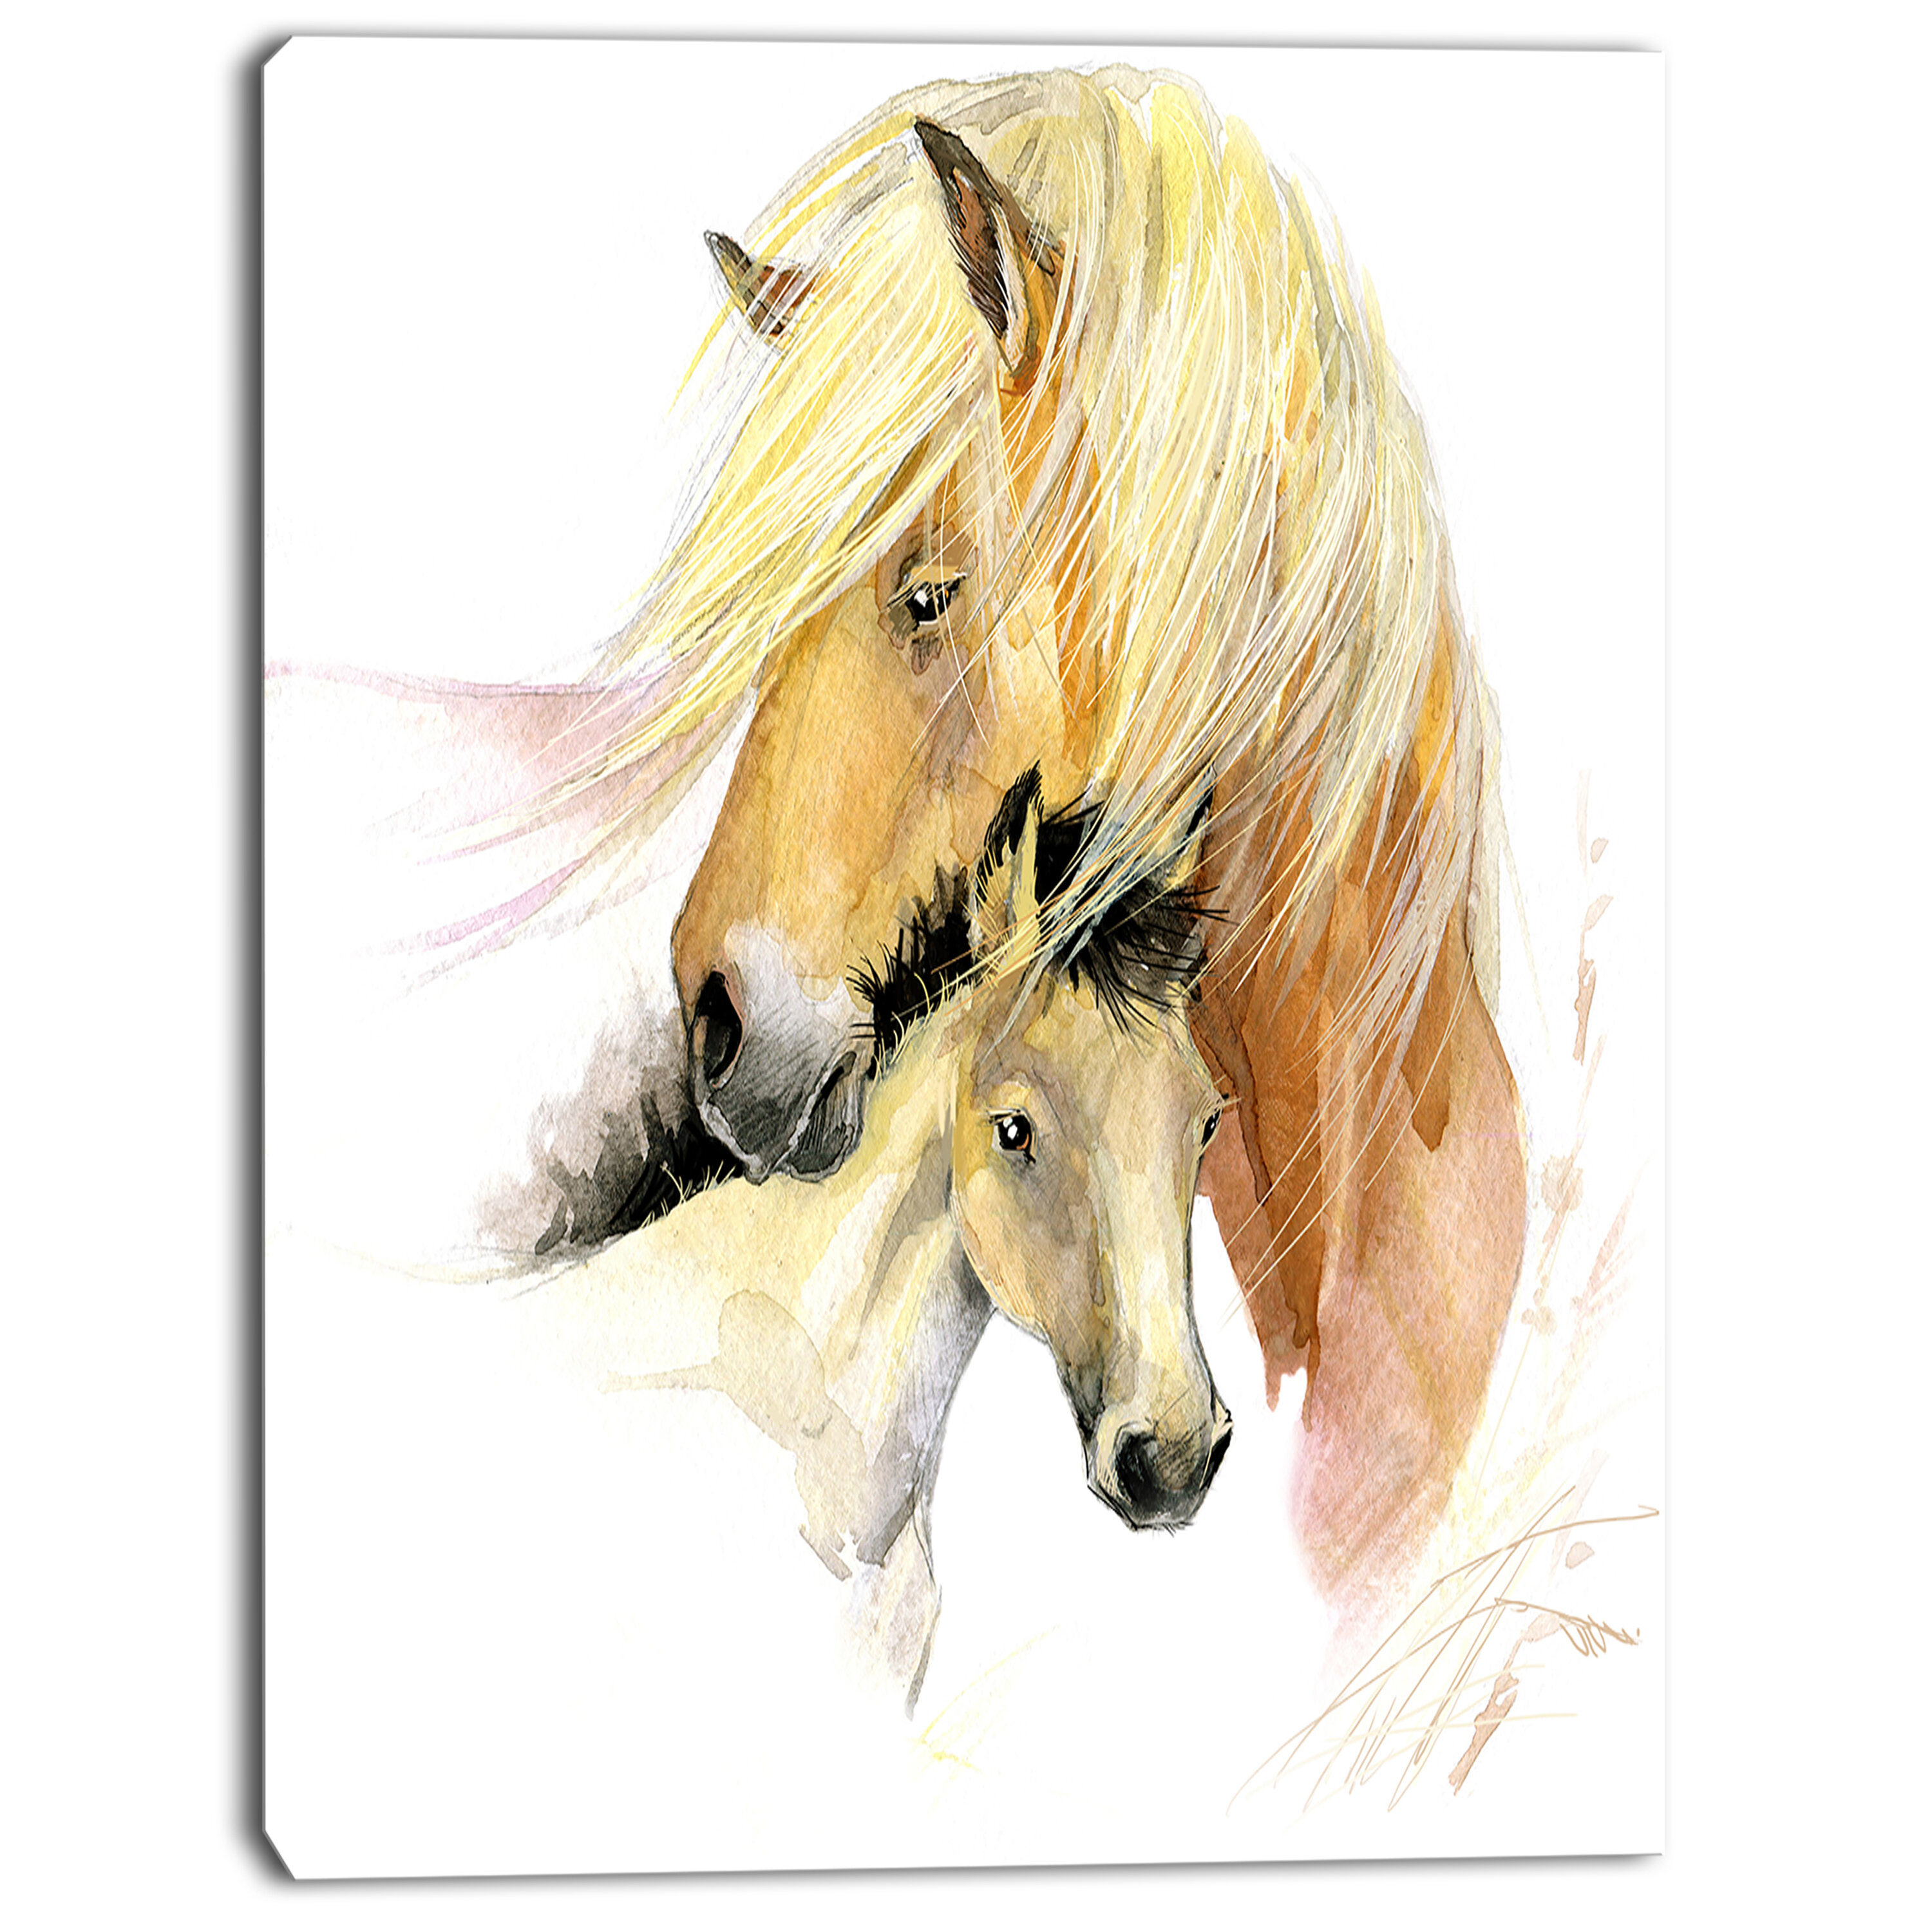 Designart Horse Mom Baby Watercolor Painting Print On Wrapped Canvas